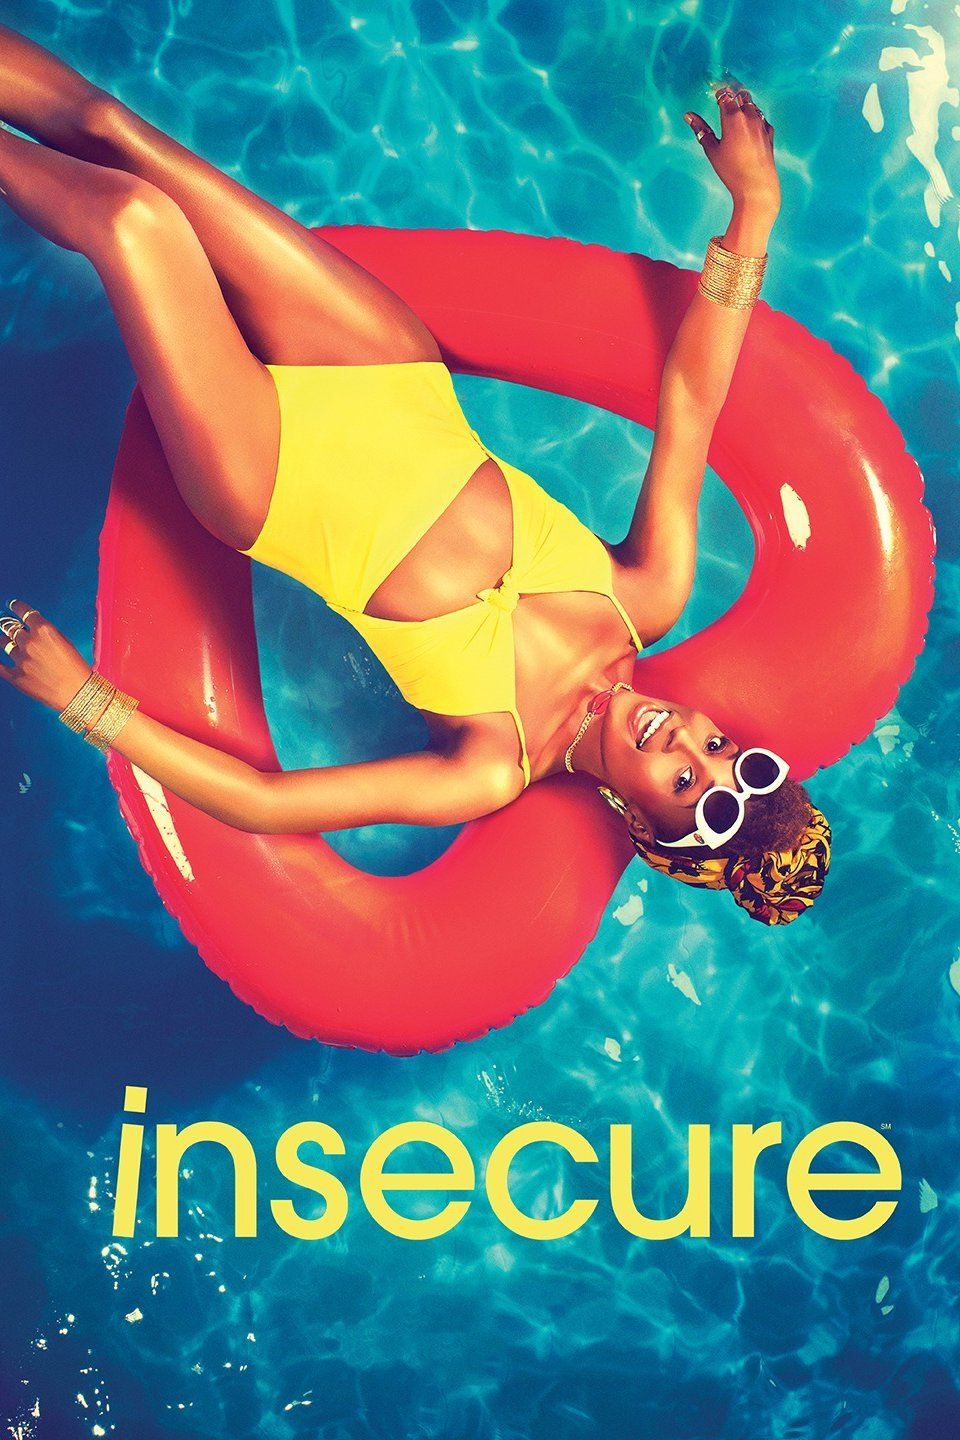 Insecure Season 2 Episode 2 Download HDTV 480p